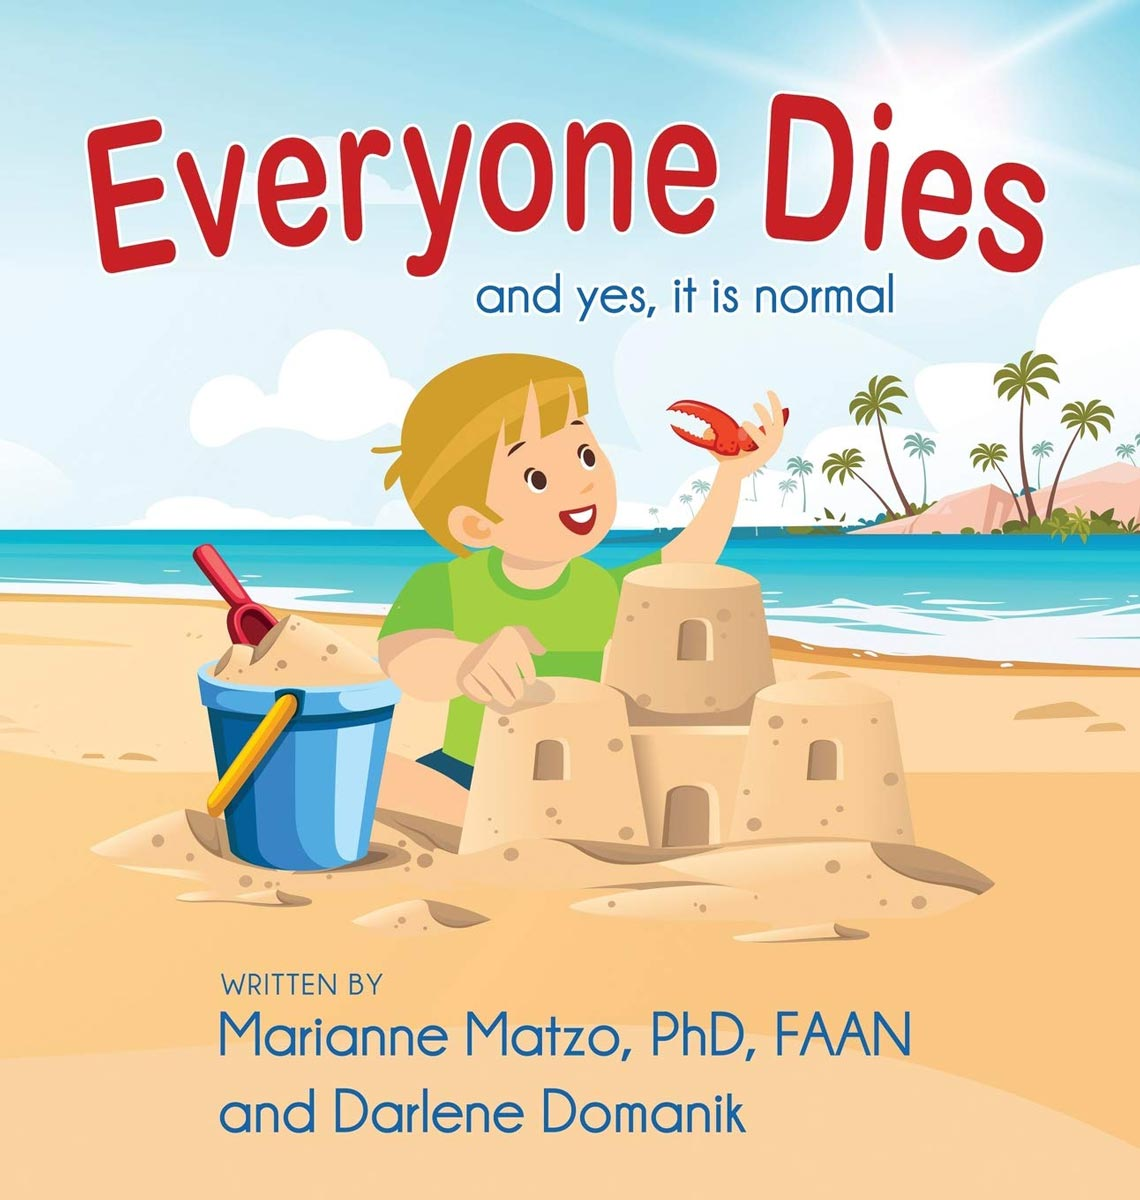 """Boy playing with a crab leg by a sand castle. Book cover with text, """"Everyone Dies and yes, it is normal"""""""